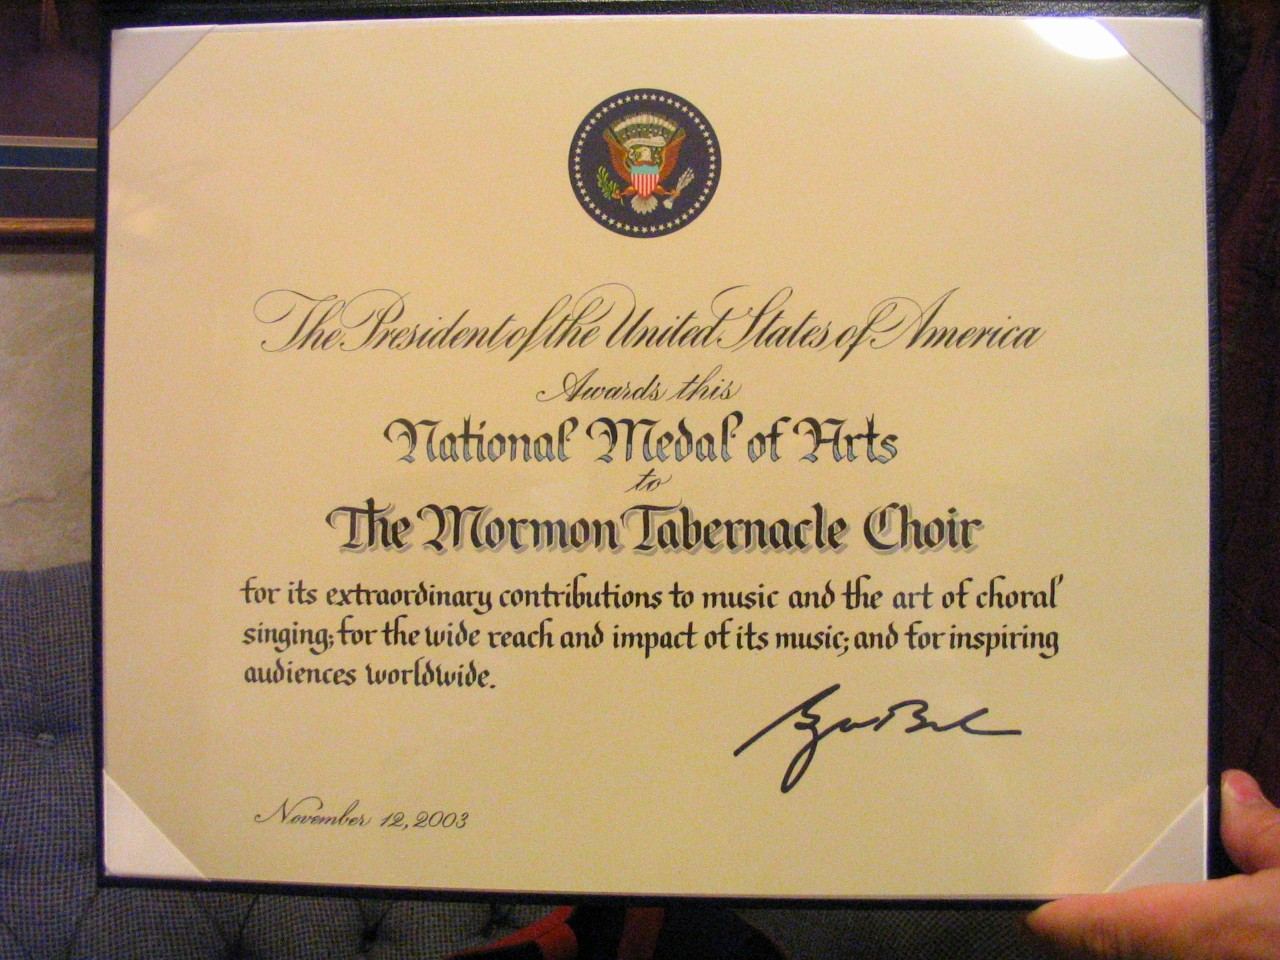 national-medal-of-arts-1.jpeg